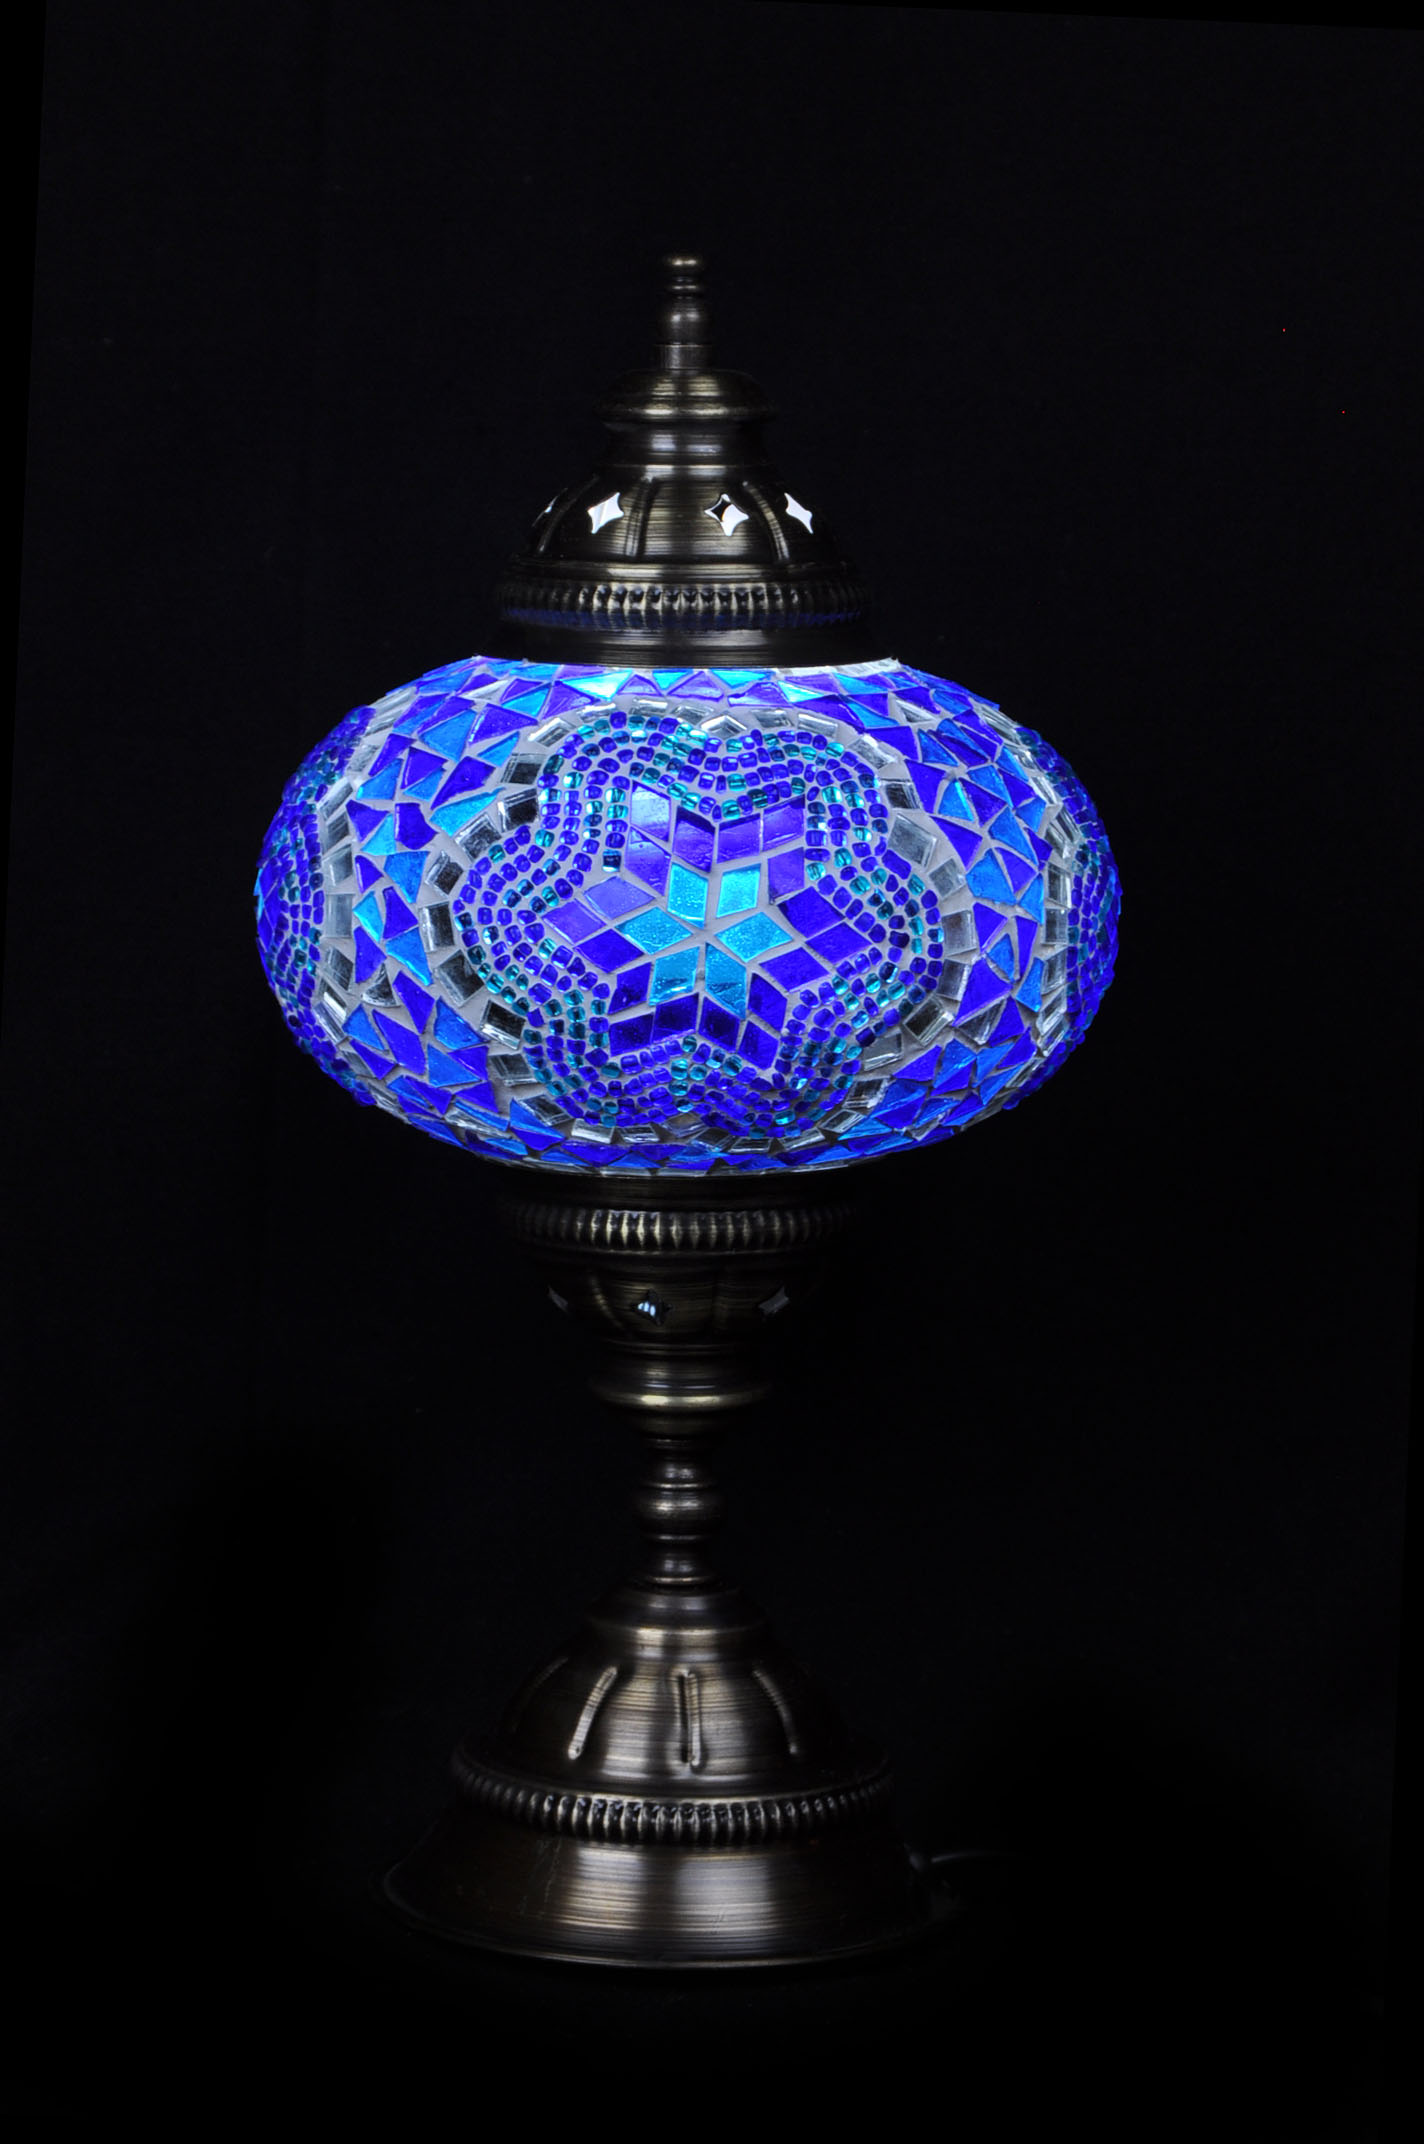 turkish lamps table lighting online the lamp ufo mosaic blue pixie dancing